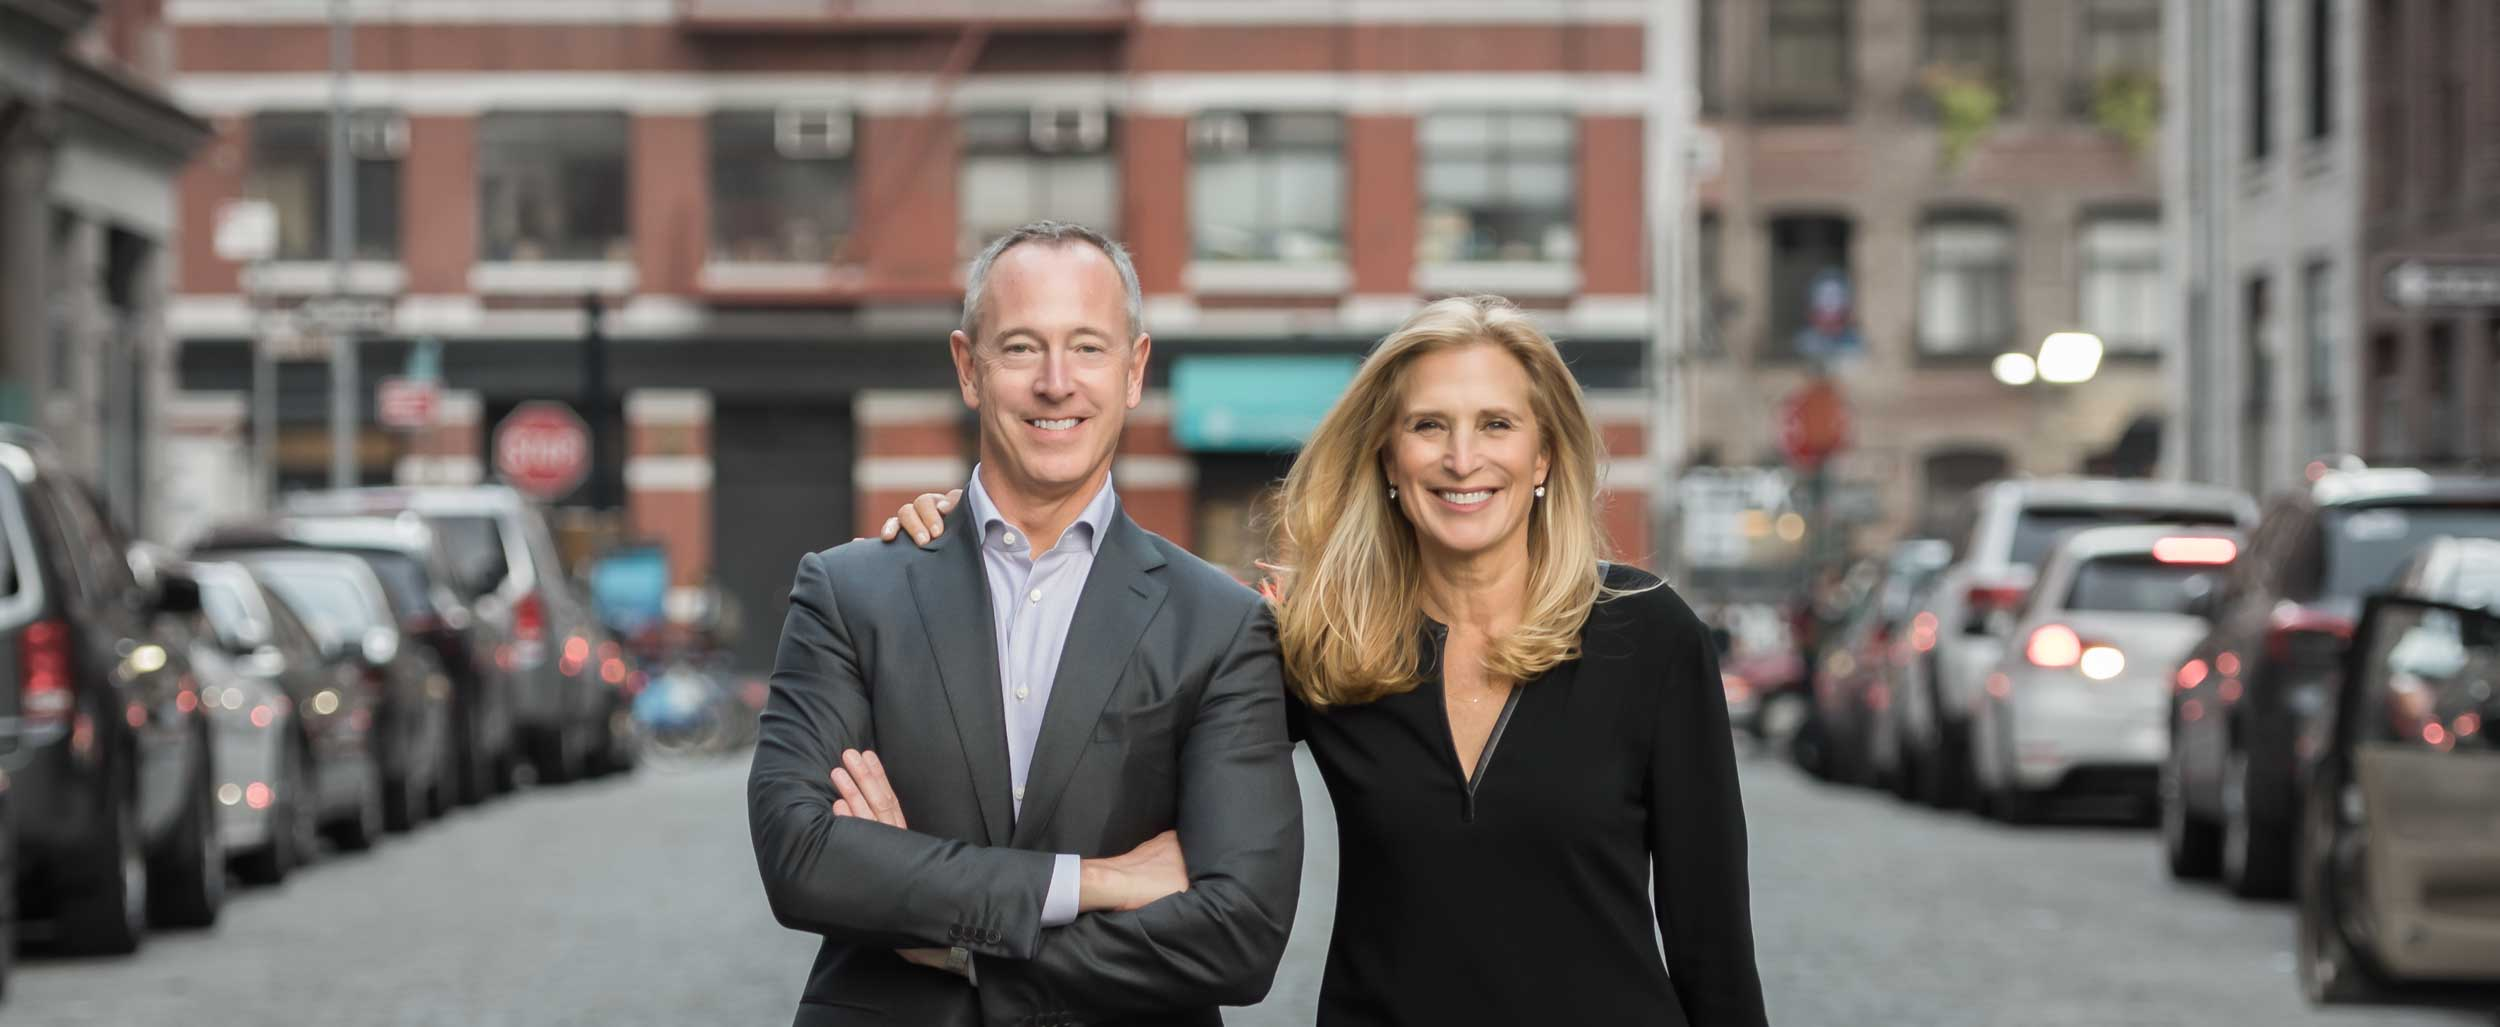 Marylin Prince and Jim Houston of The Prince Houston Group Executive Search Consultants